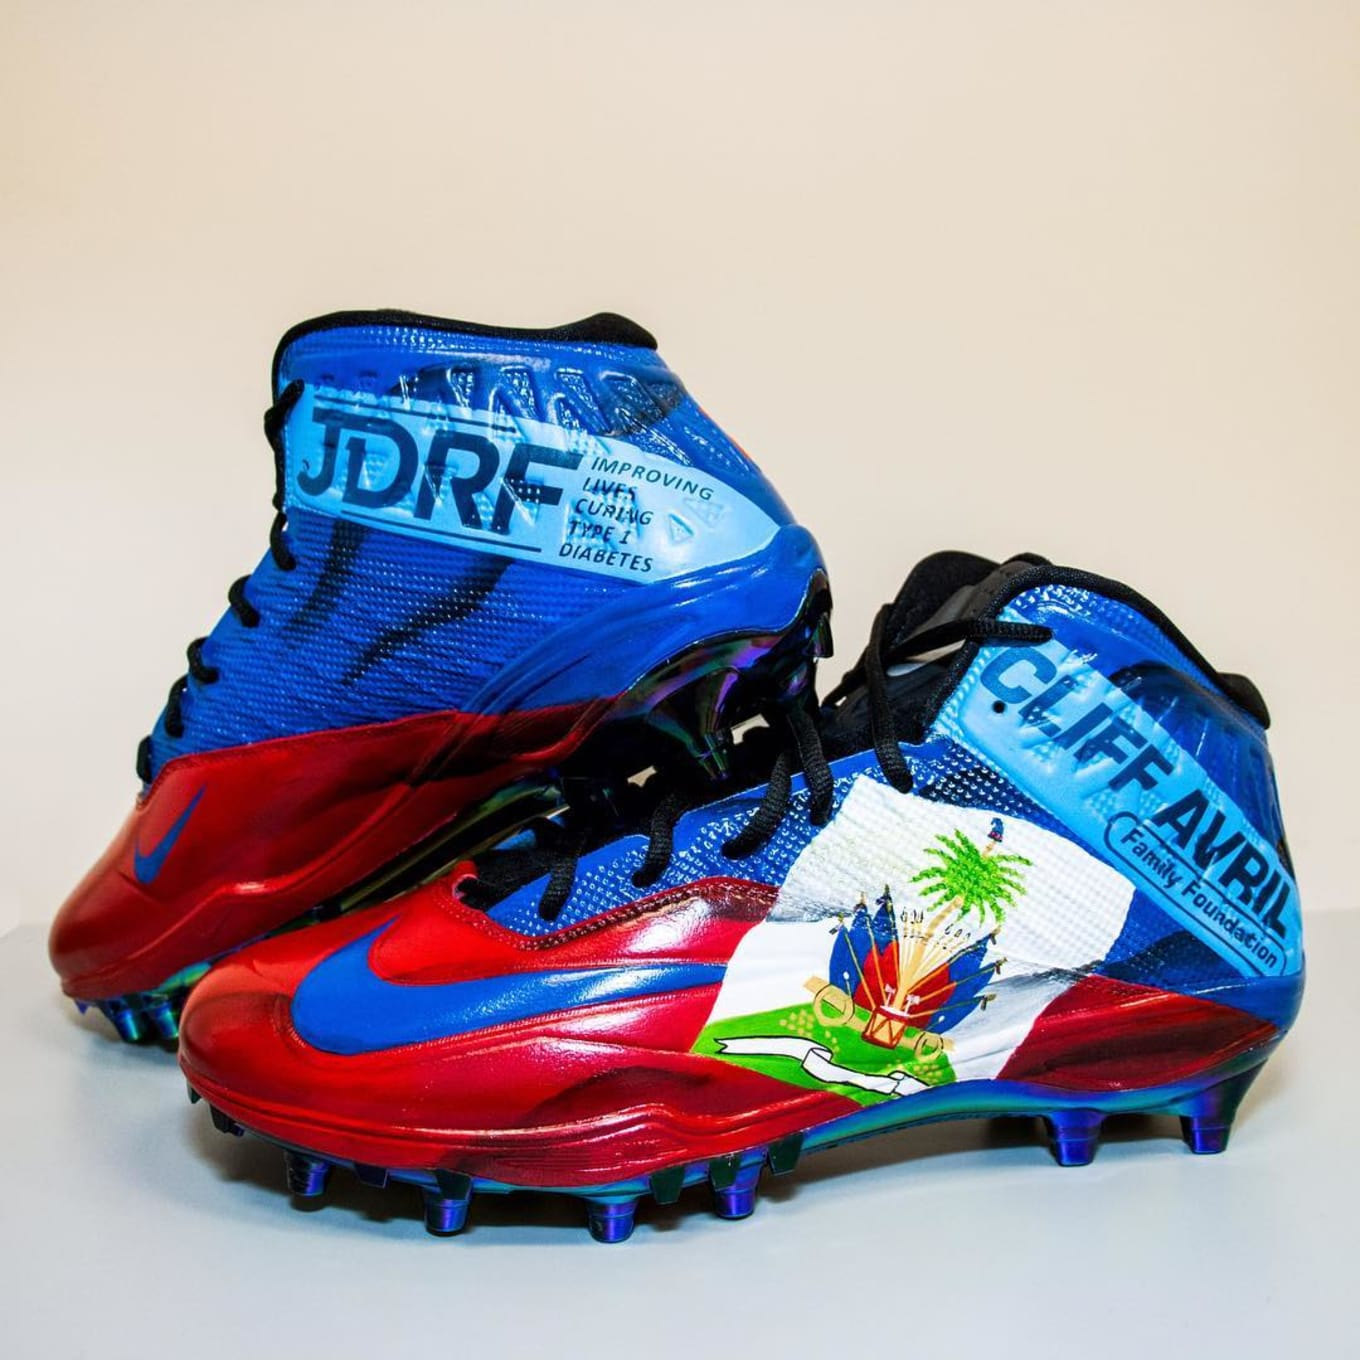 7251aef75e9a NFL Cause Custom Cleats | Sole Collector